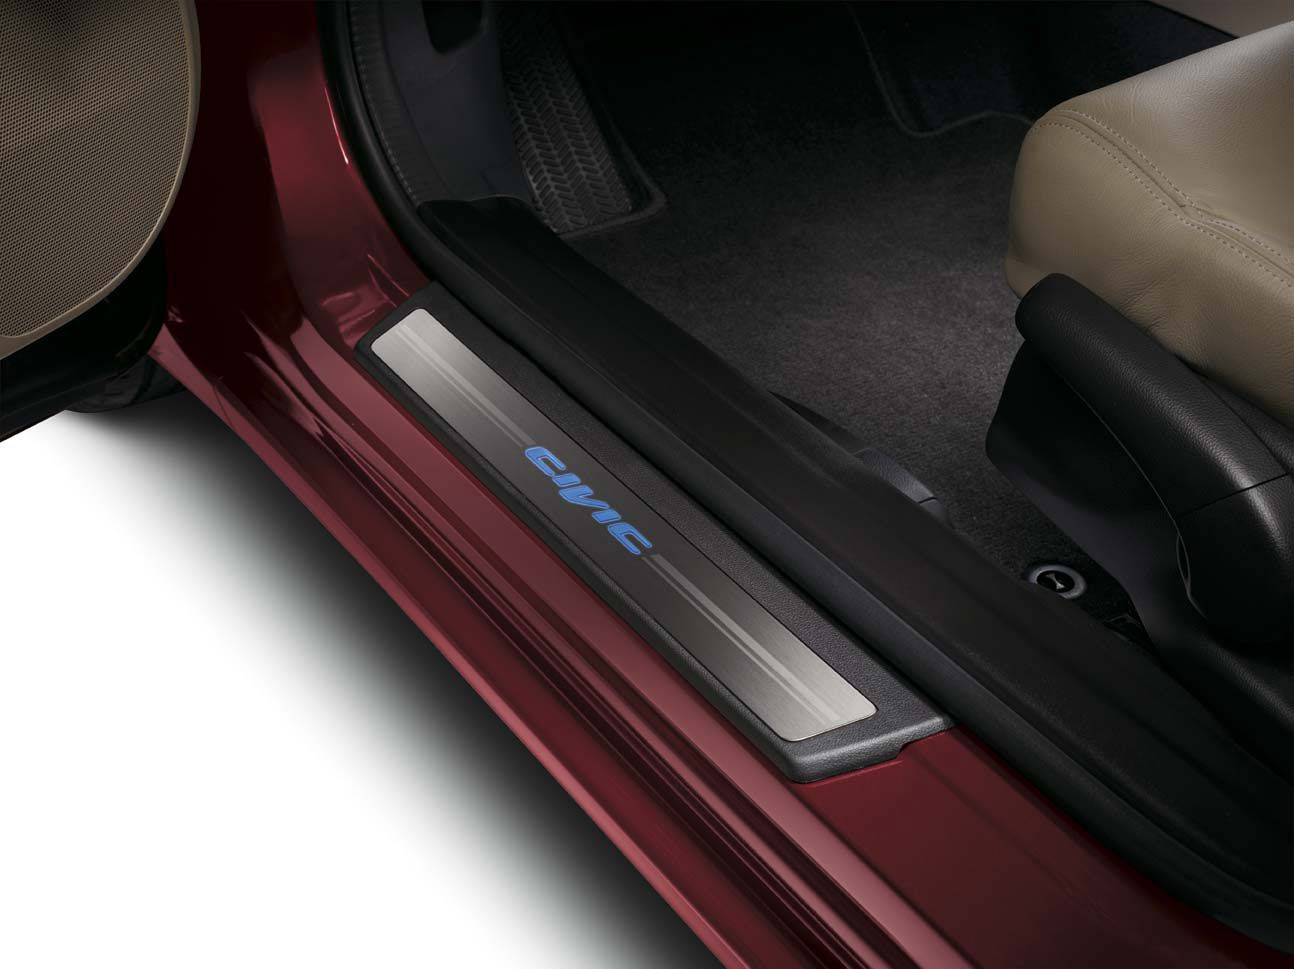 Prevent scratches and dents while providing entry lighting for the driver and passenger. The 2 front step pieces light up blue and function off the door switches. Rear trim is unlighted.